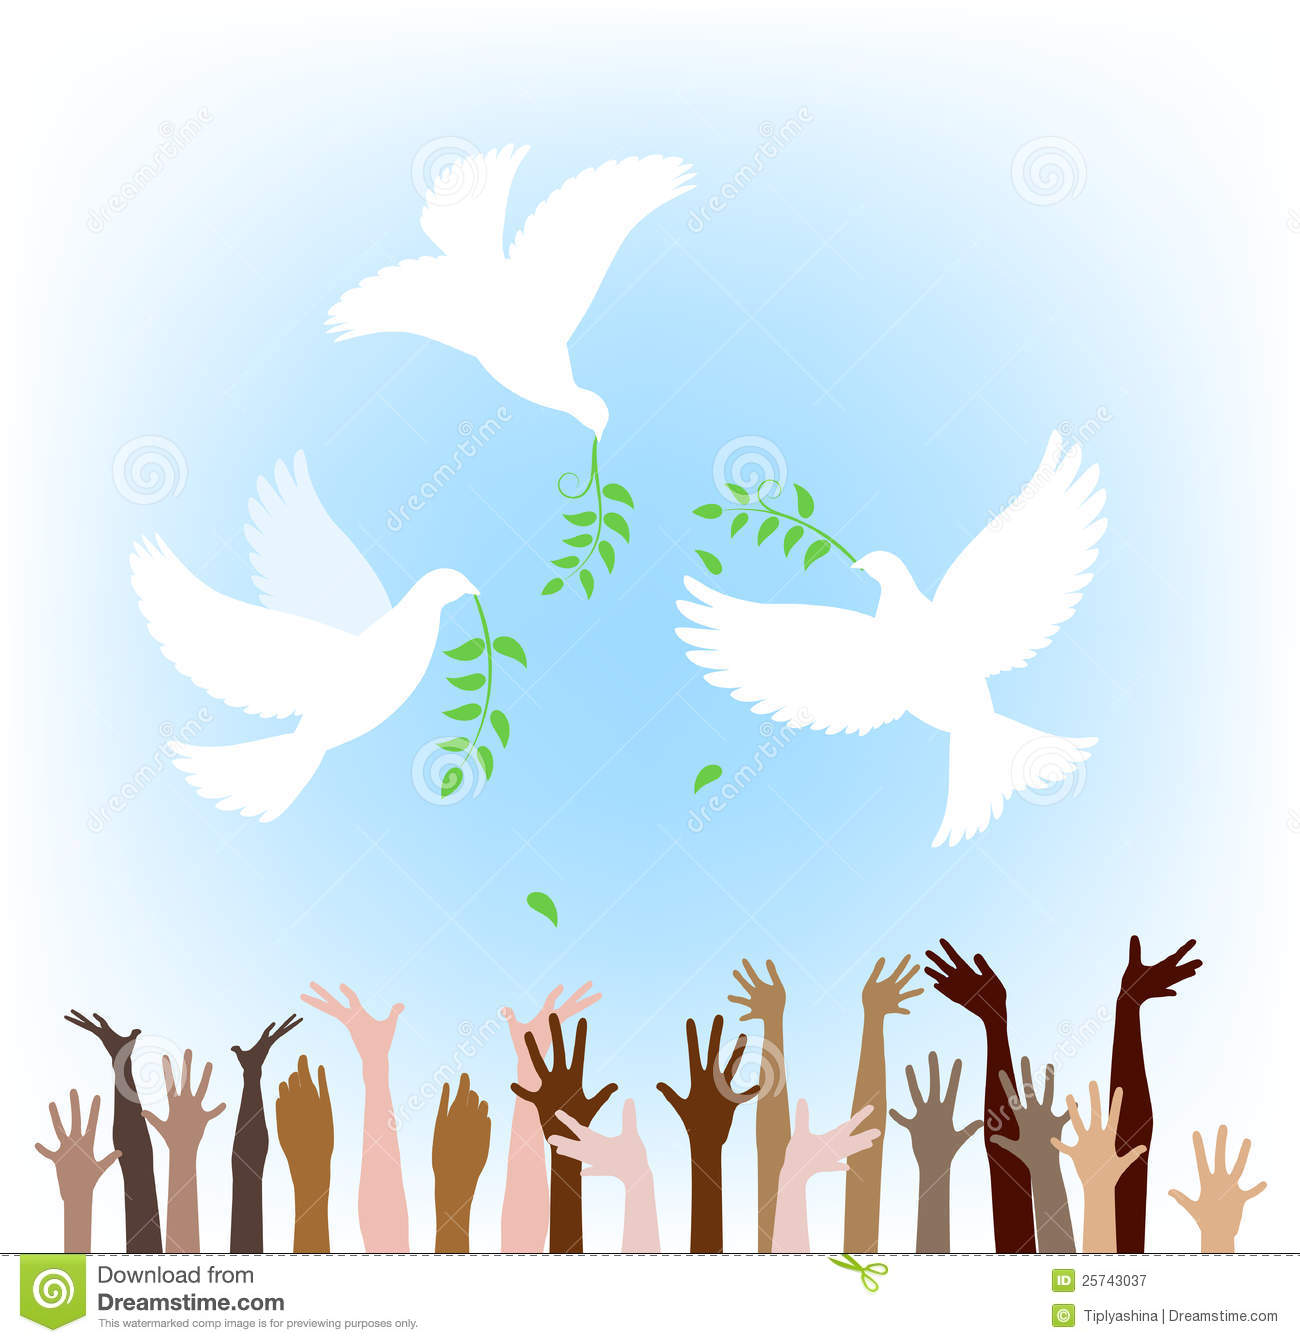 All people look for peace